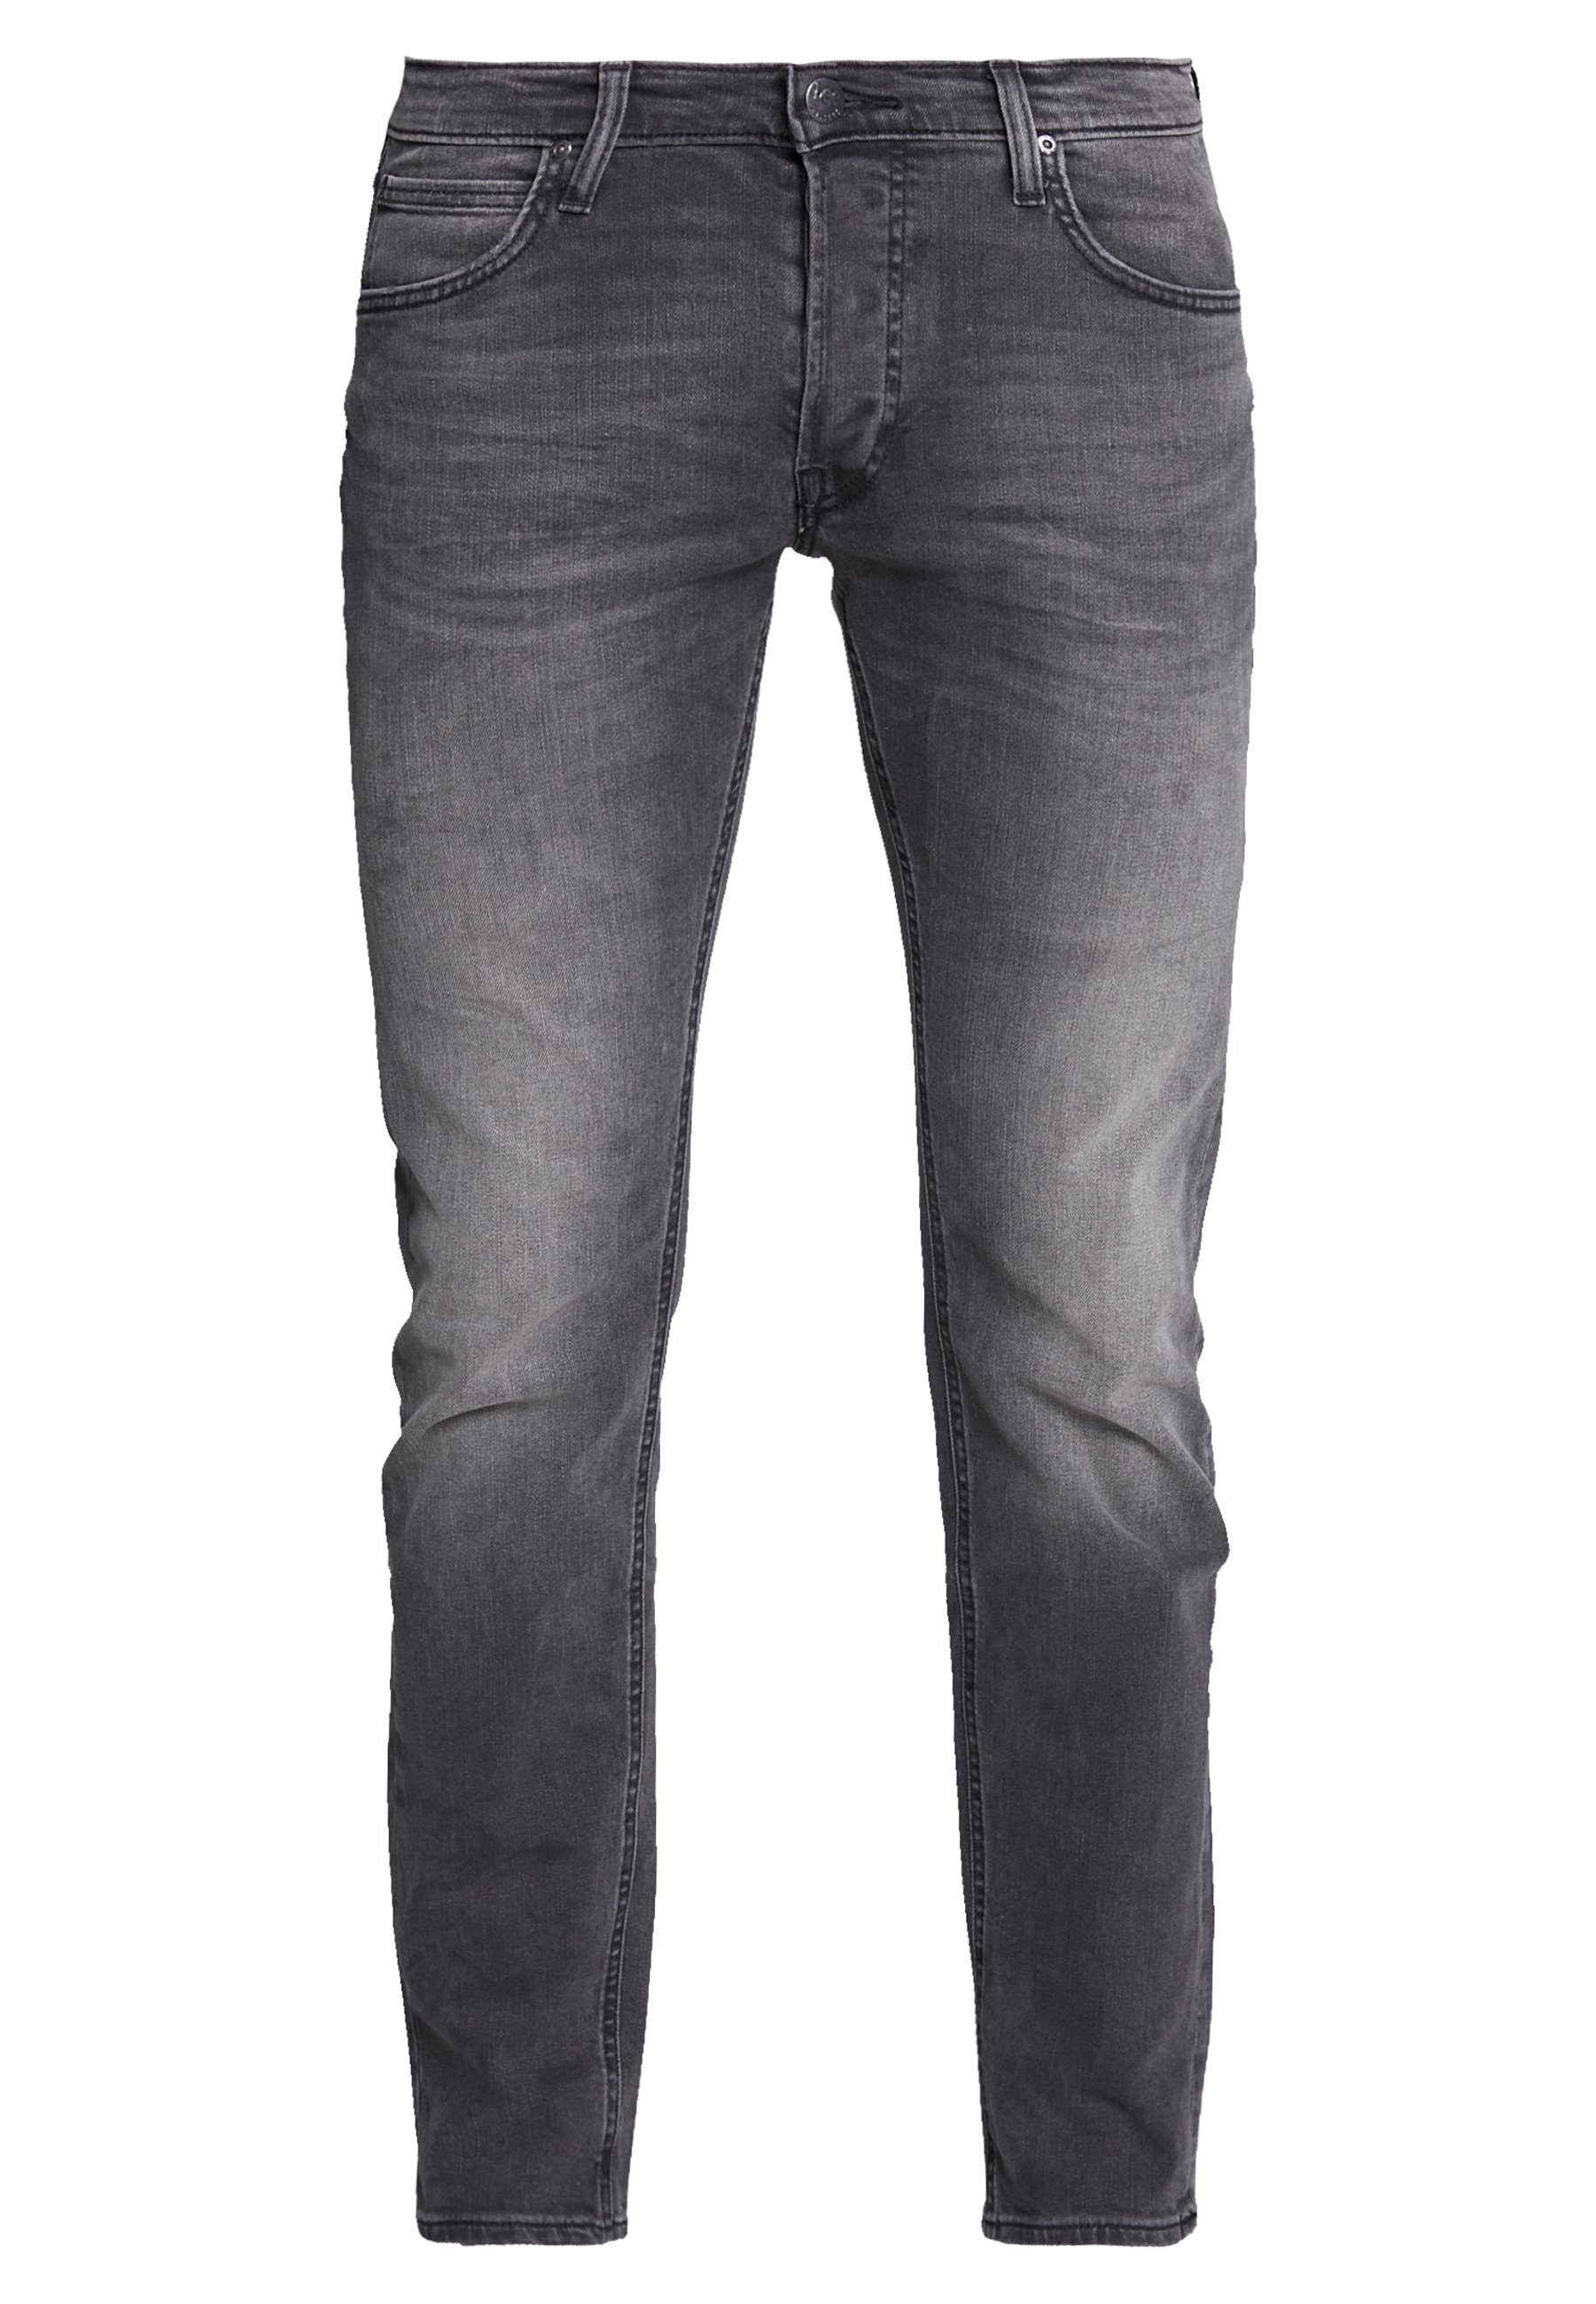 Lee DAREN BUTTON FLY - Jean droit - moto worn in